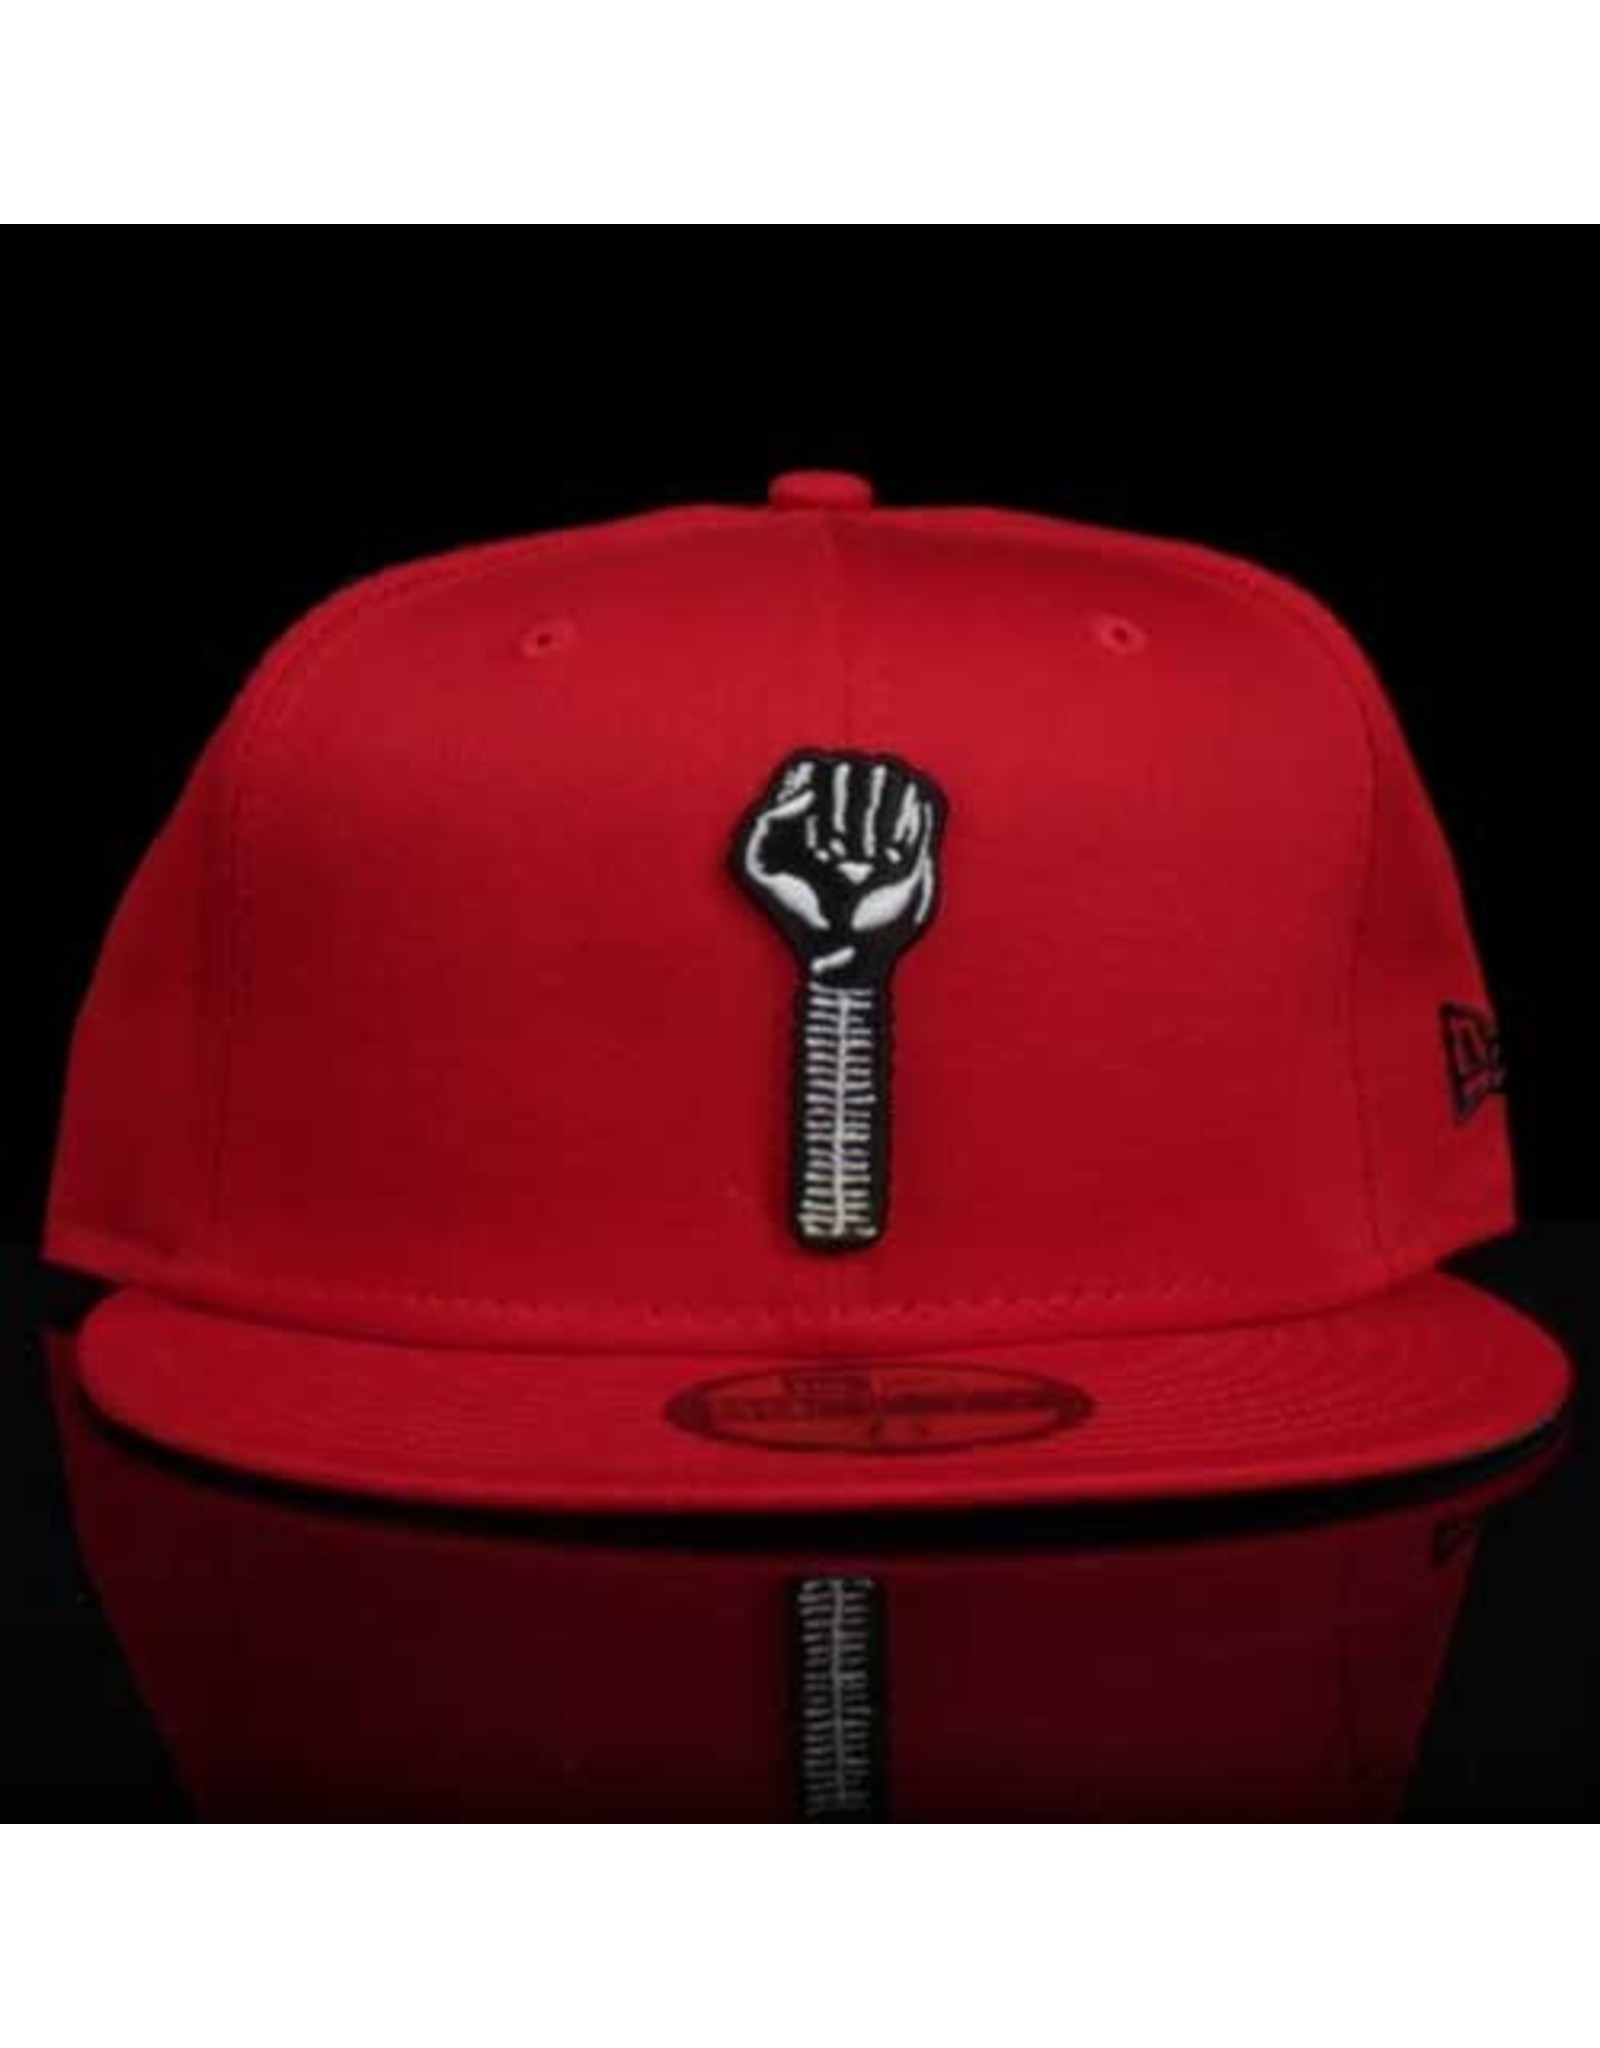 New Era x Hardies Red Black Bolt Fitted